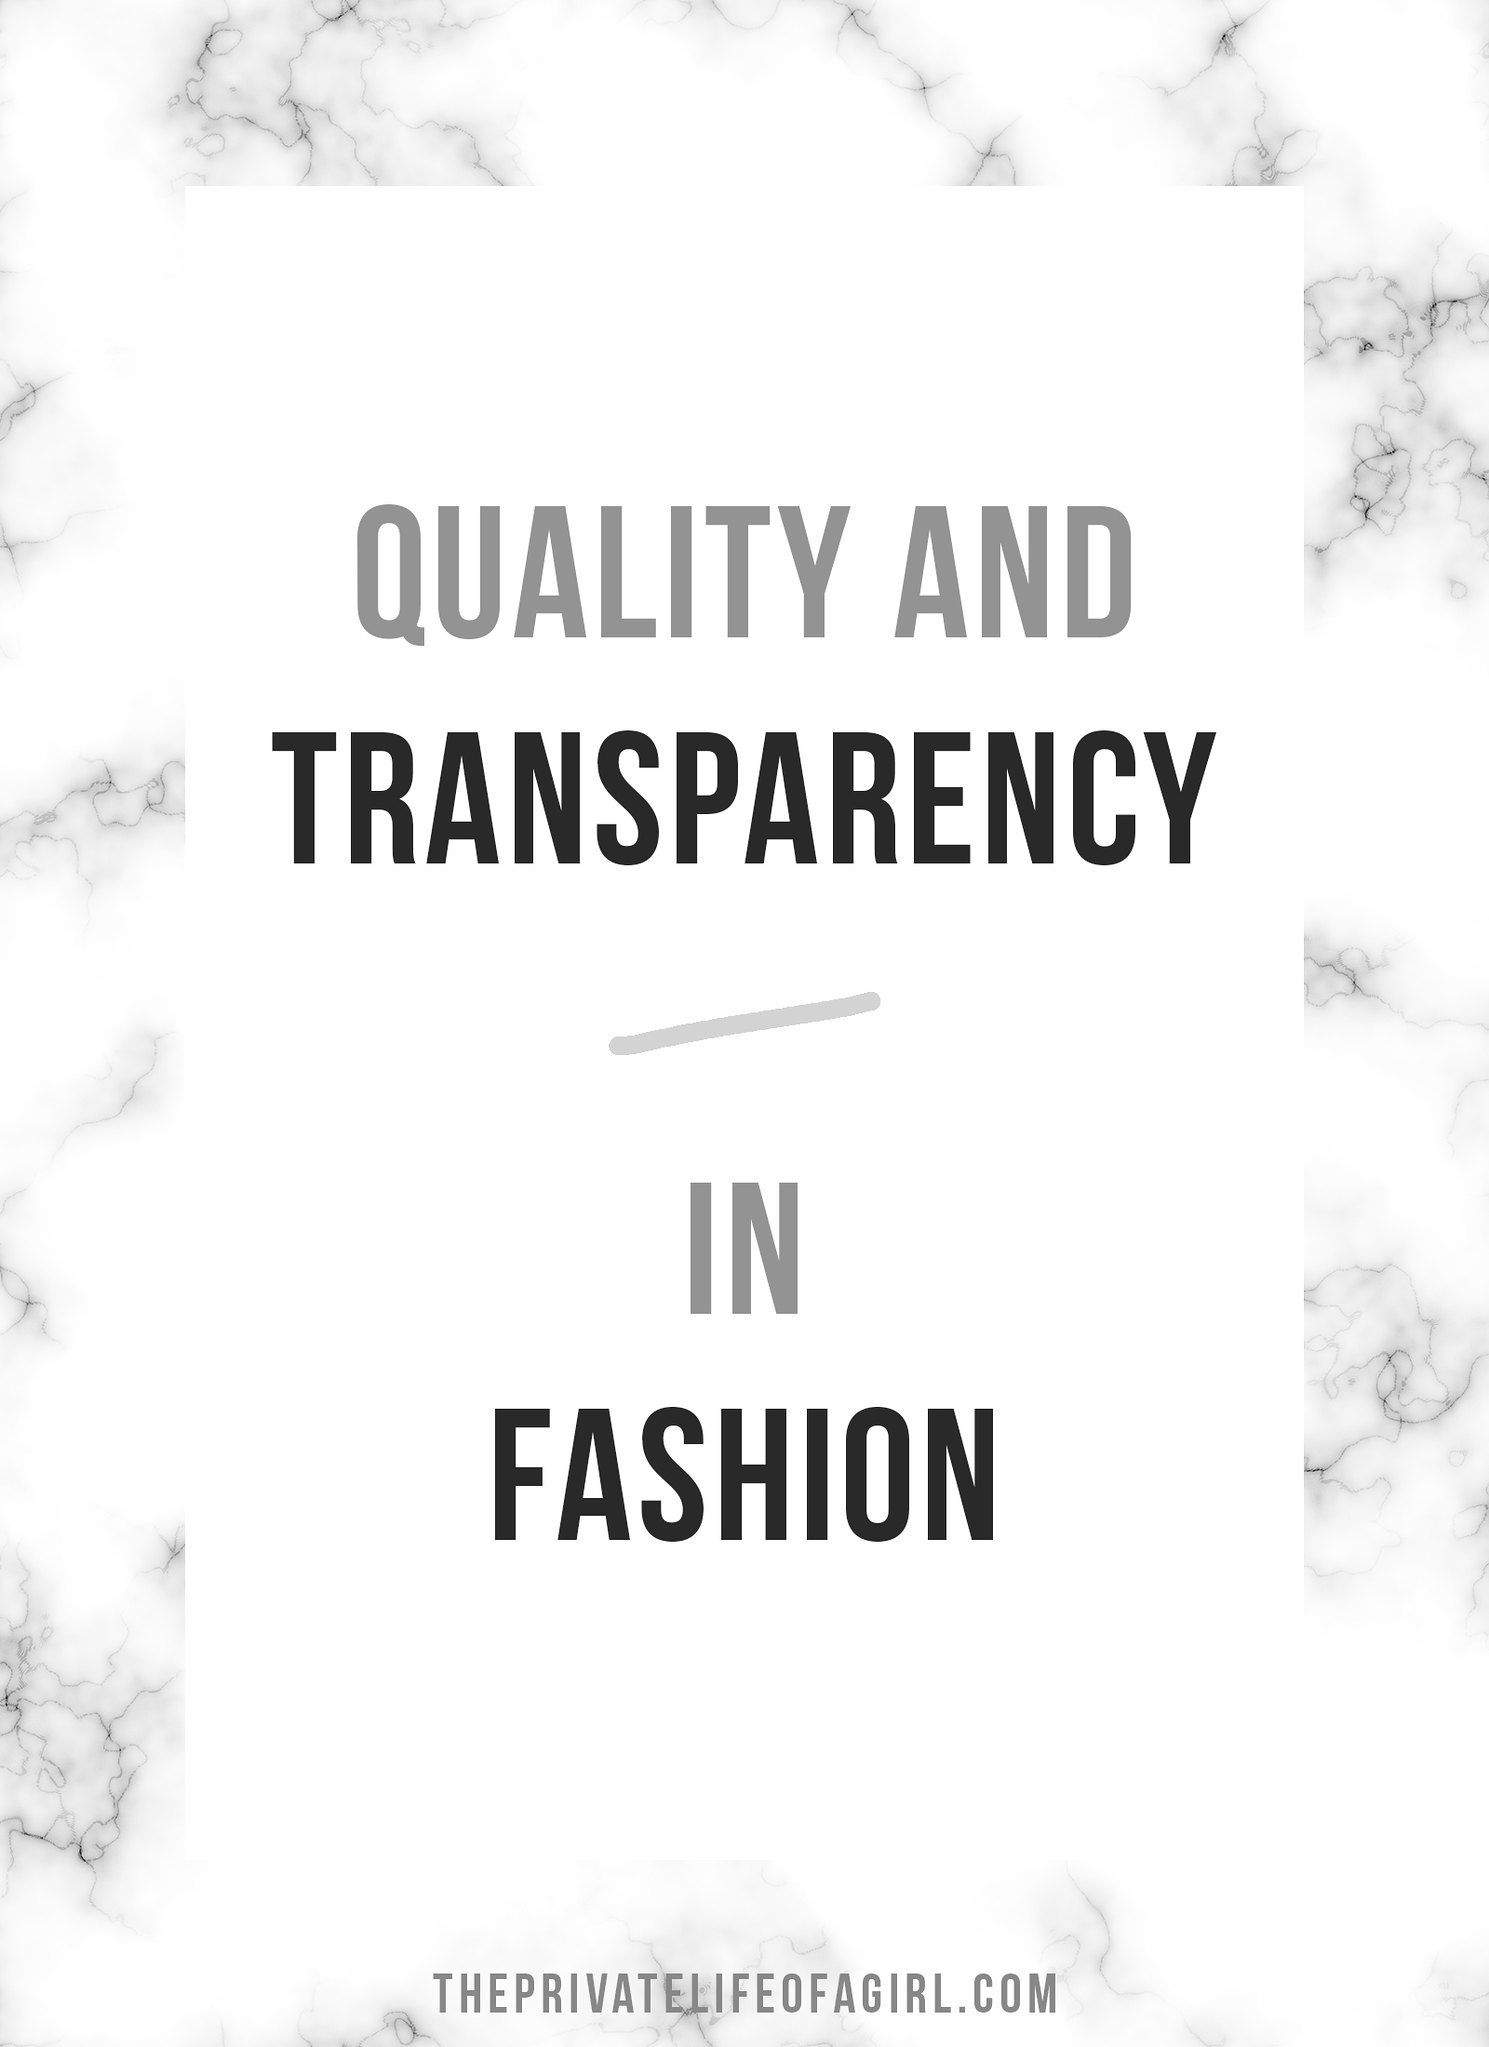 On Quality and Transparency in Fashion